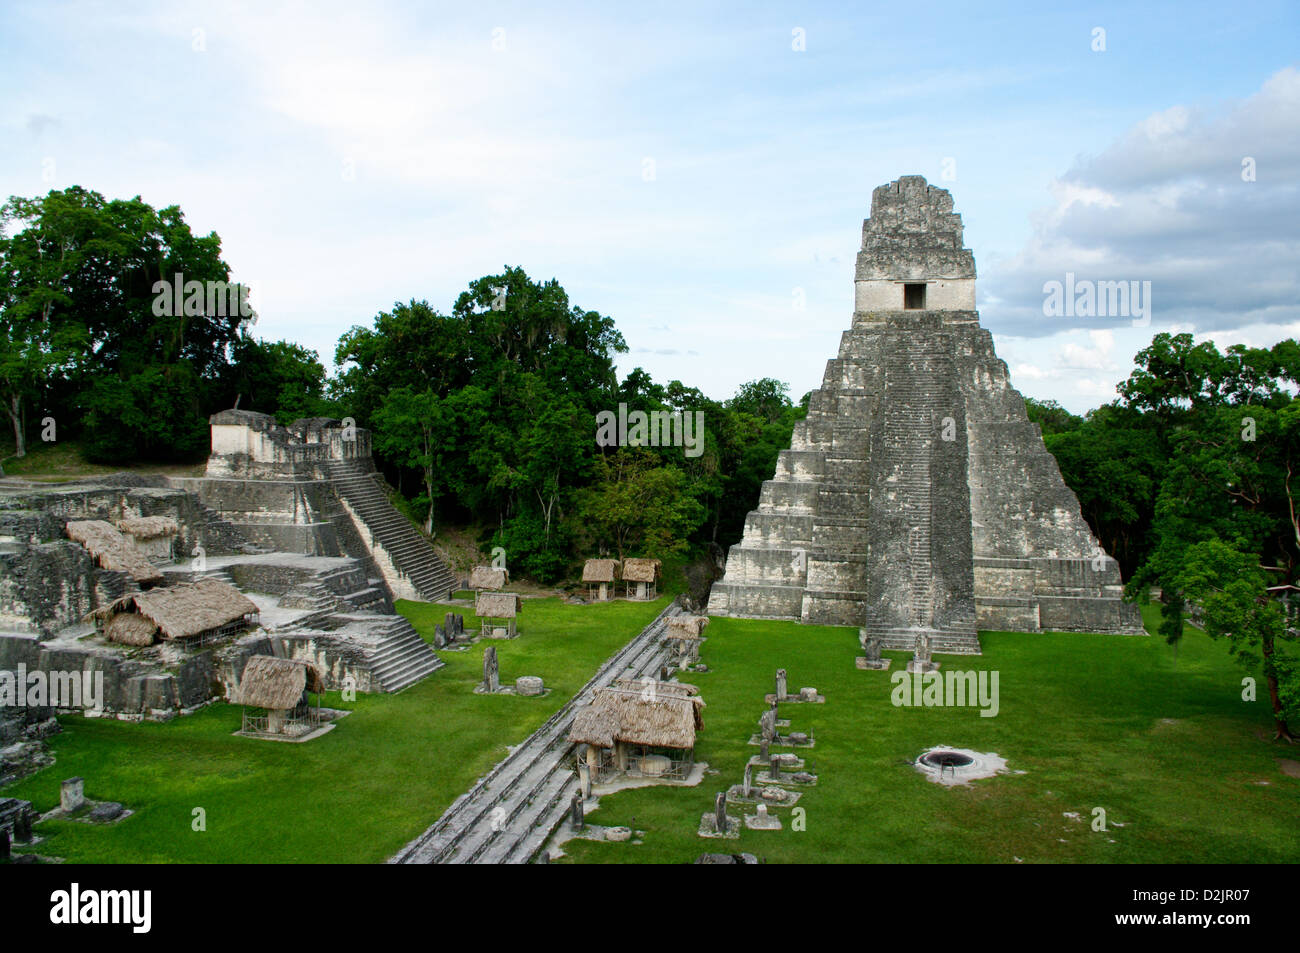 Tikal Temple 1 or Temple of the Great Jaguar, is located in Tikal, a major pre-Columbian Maya civilization archaeological - Stock Image